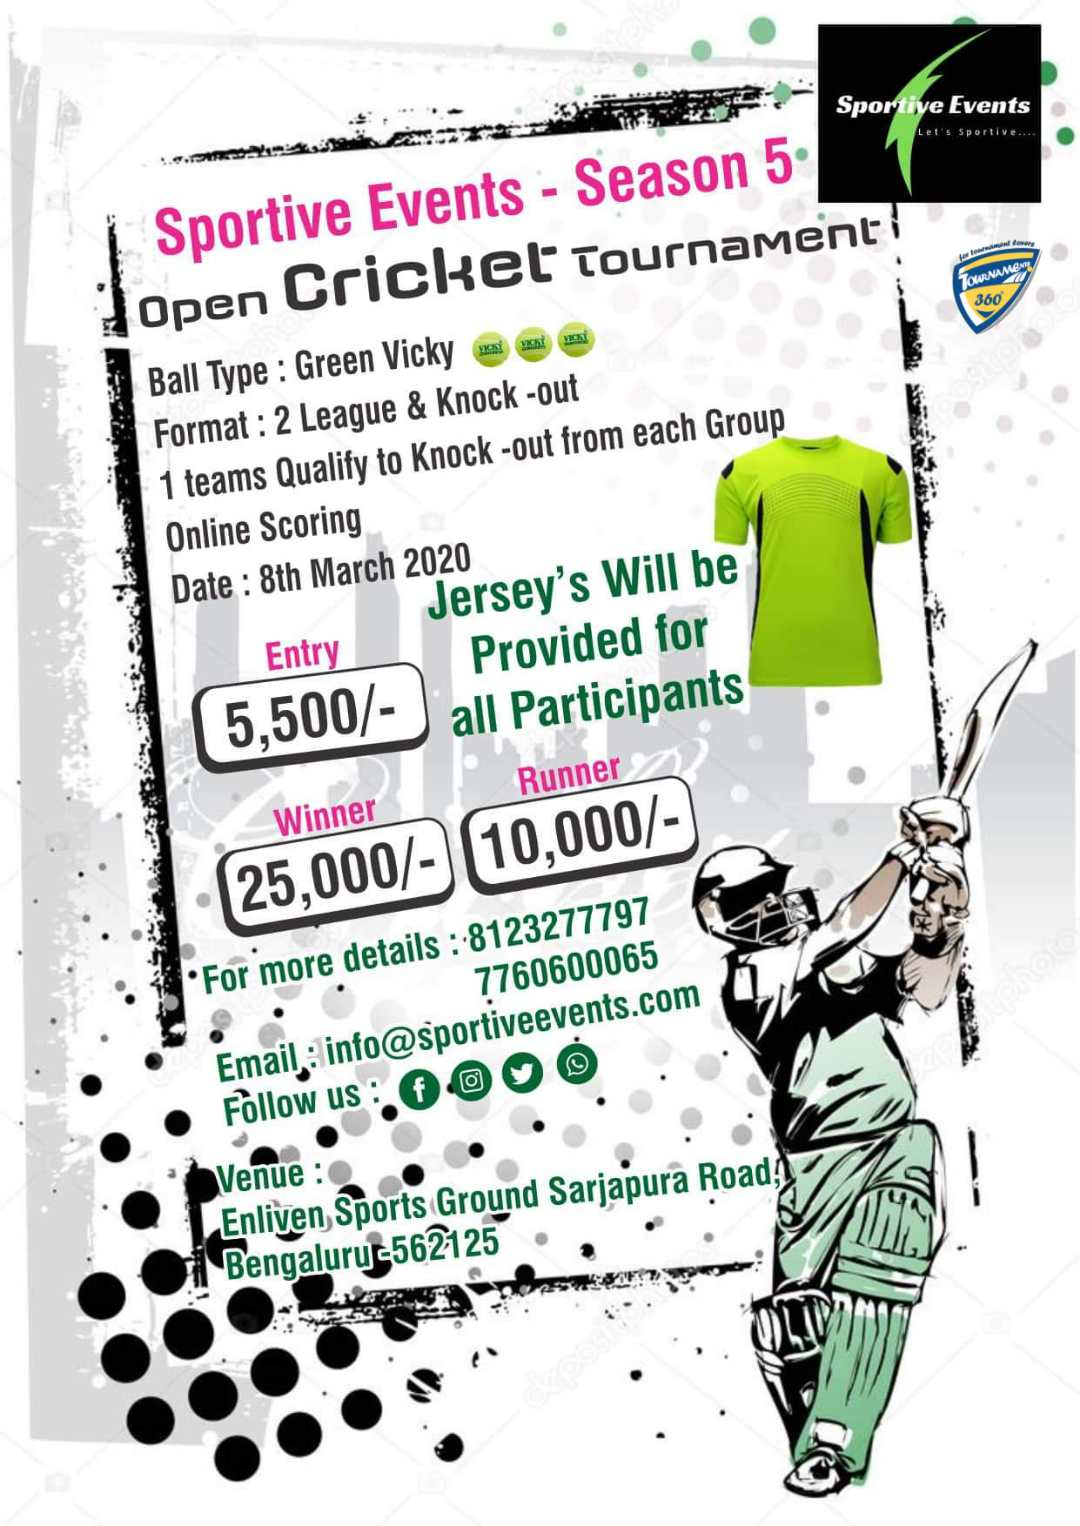 Open Cricket Tournament Season 5